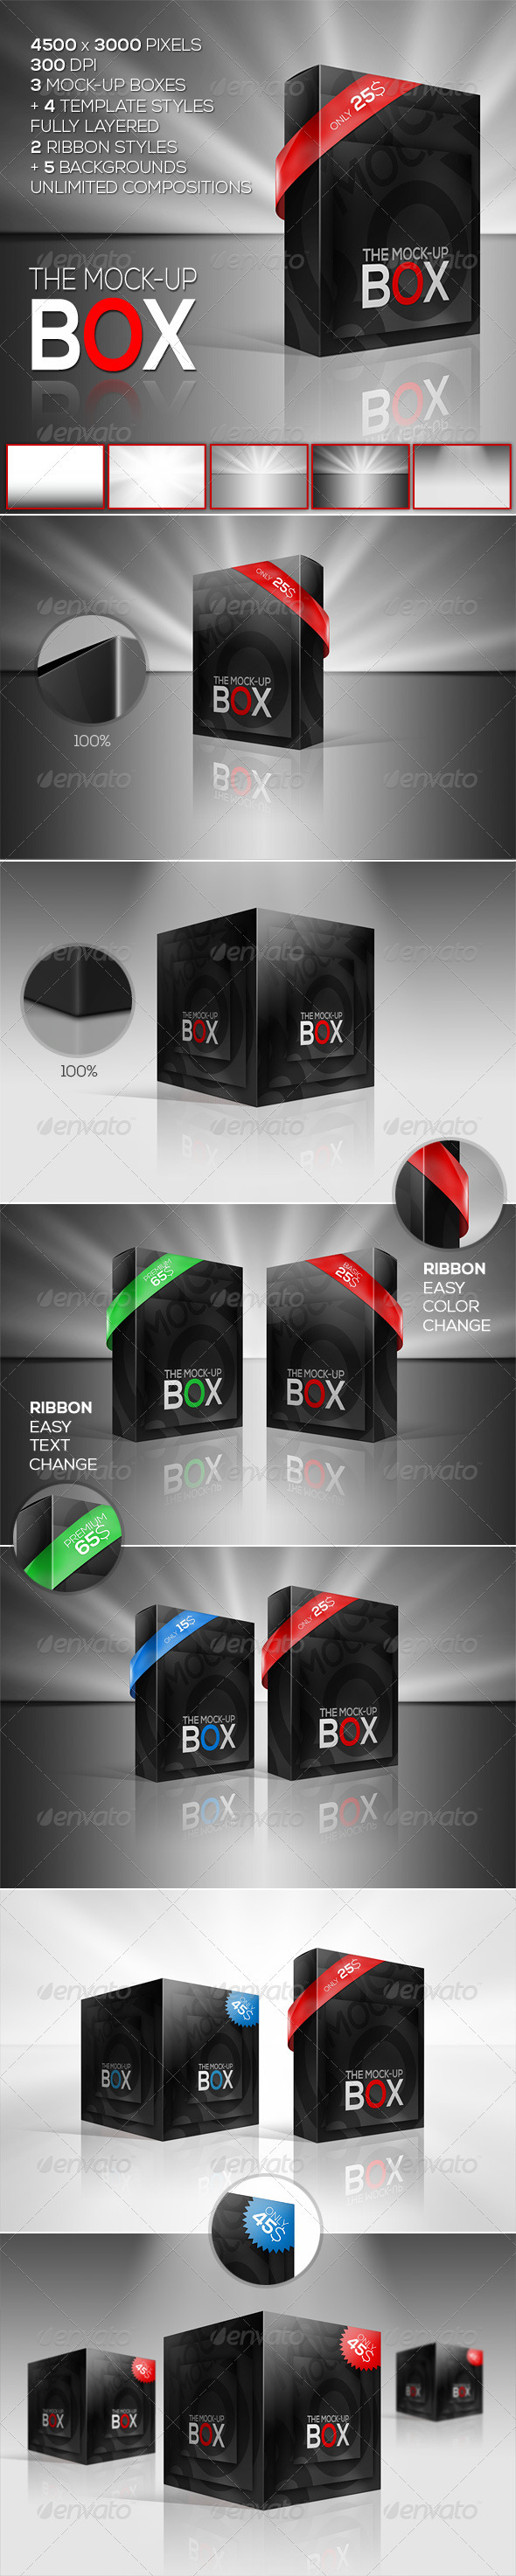 GraphicRiver The Mock-Up Box 7 Photorealistic Styles 3117912